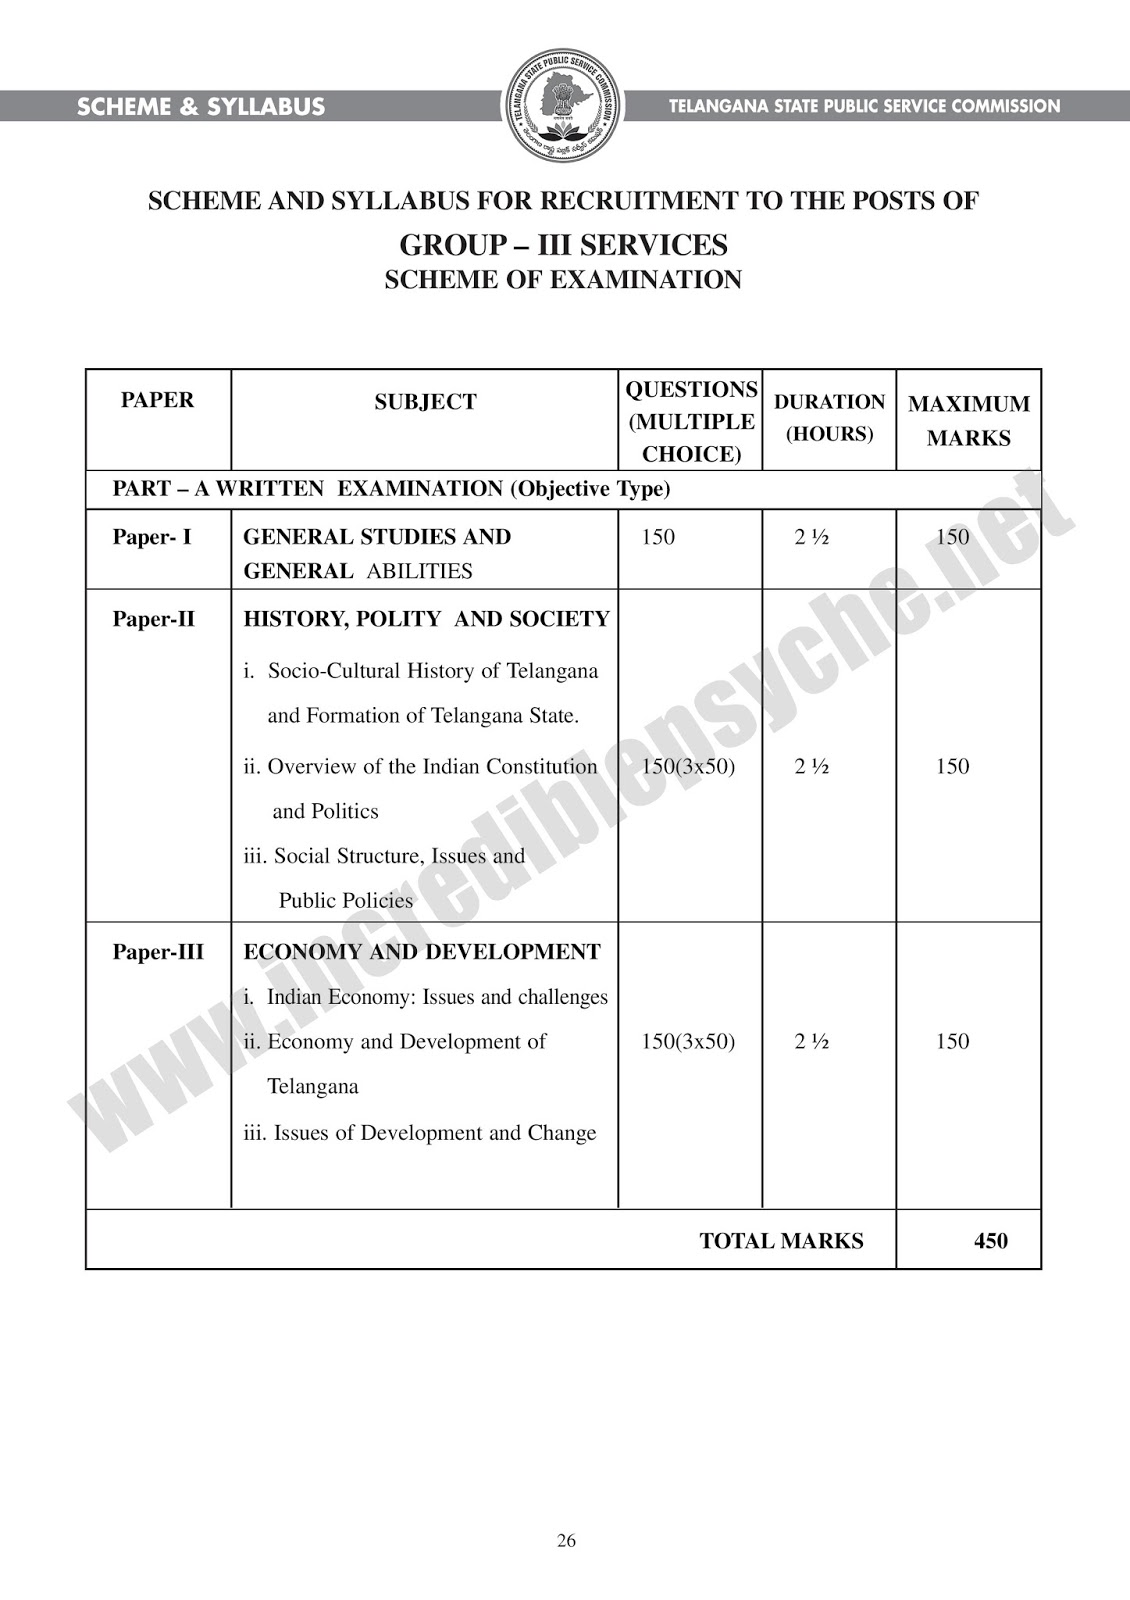 Telangana TSPSC Scheme of Examination and Syllabus for the Recruitment of Group III Services Posts